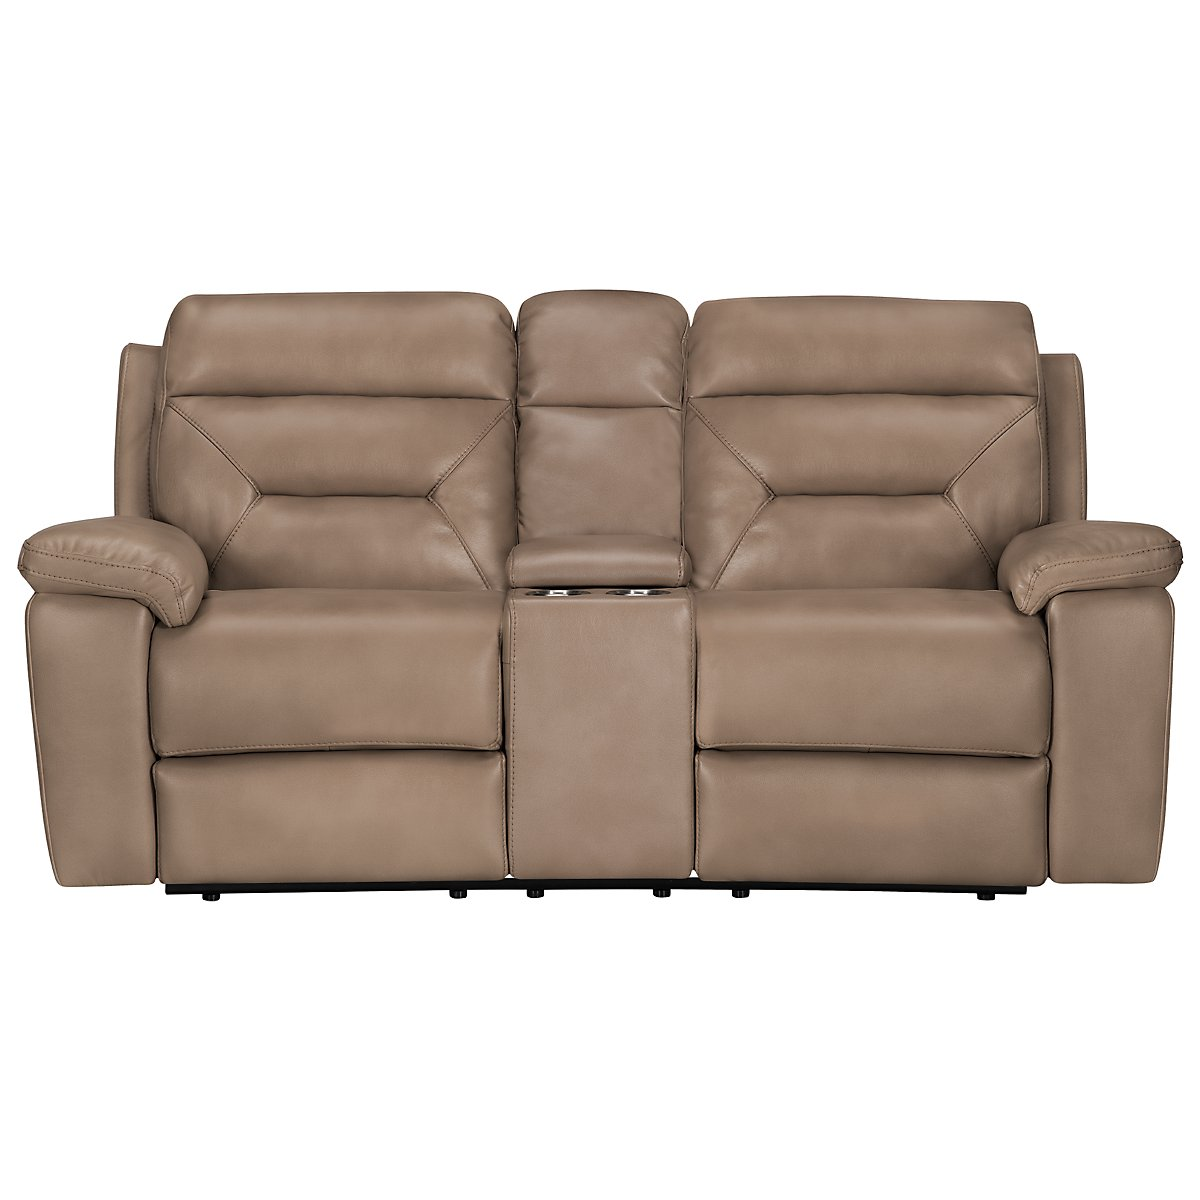 City Furniture Phoenix Dk Beige Microfiber Reclining